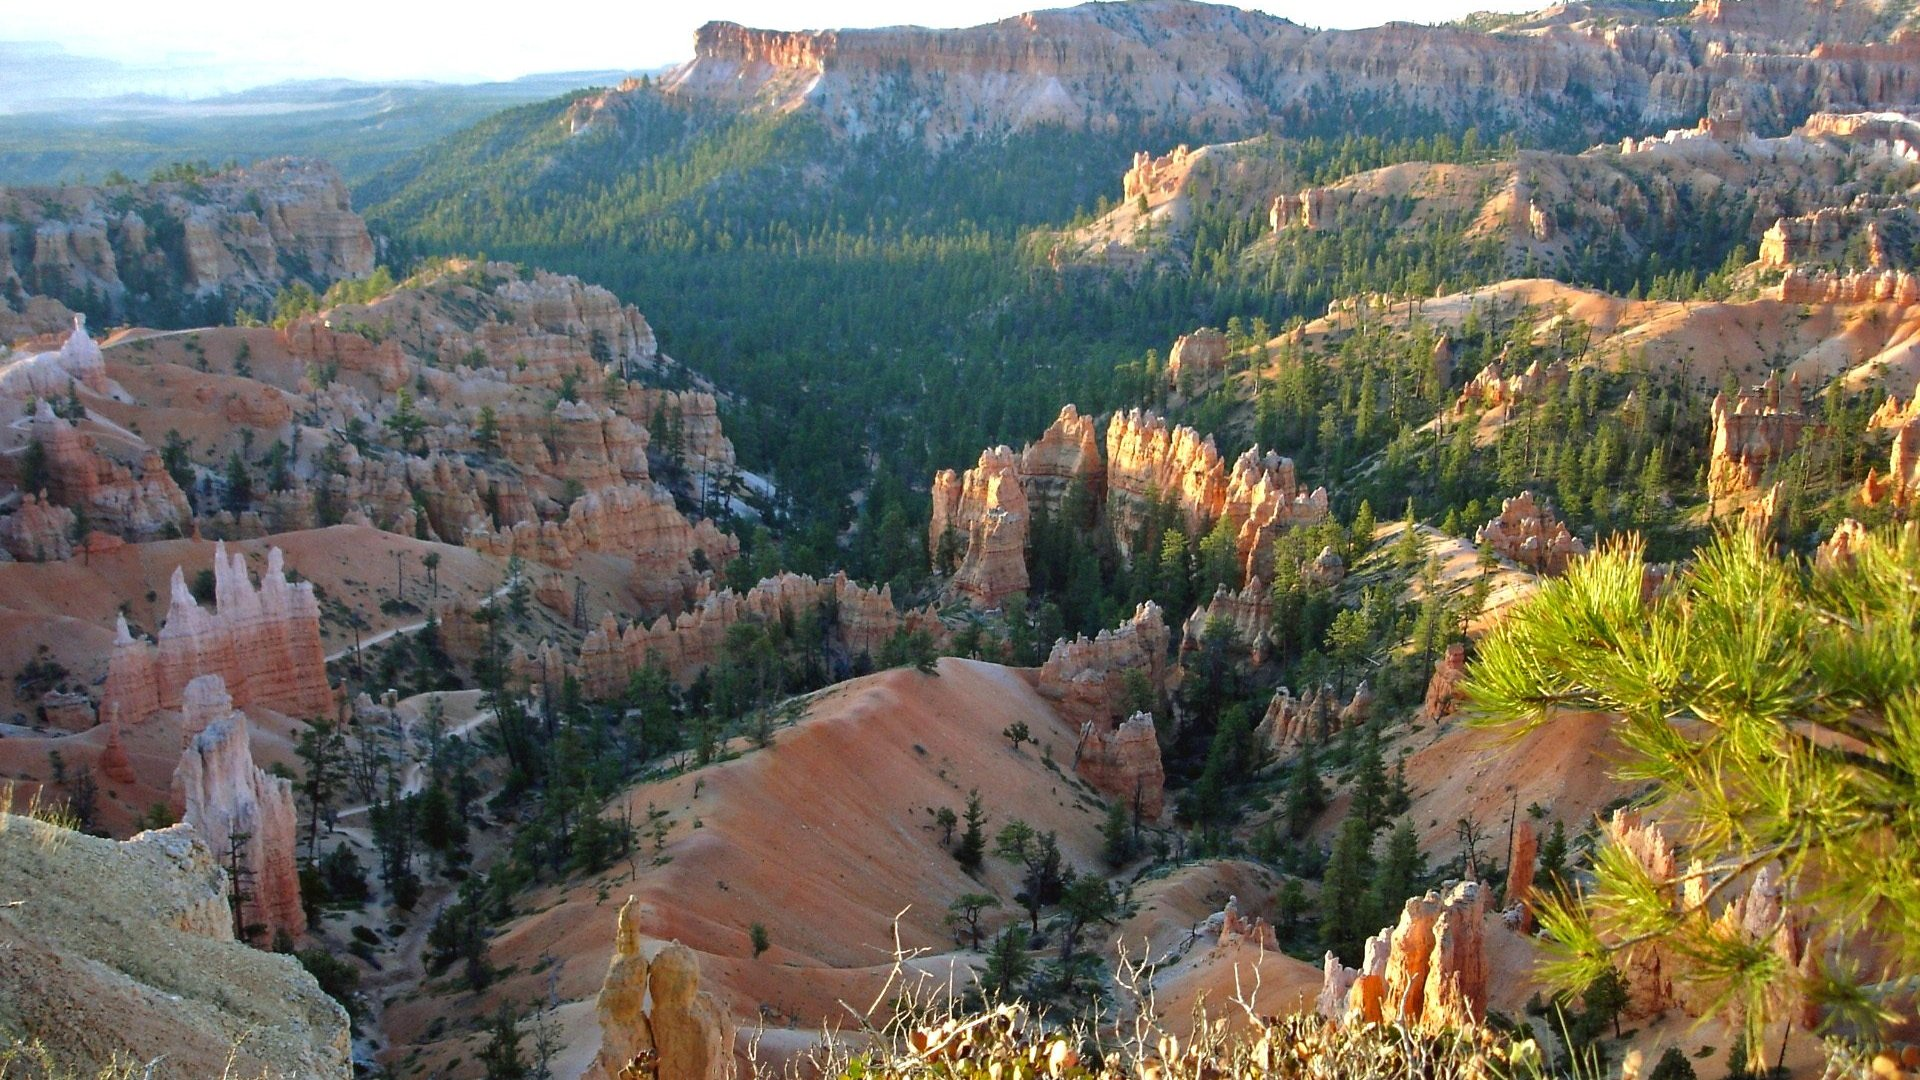 bryce canyon national park lesbian personals Welcome to laura miller and craig mcgowan's wedding website  we continued dating,  zion national park, bryce canyon national park, .